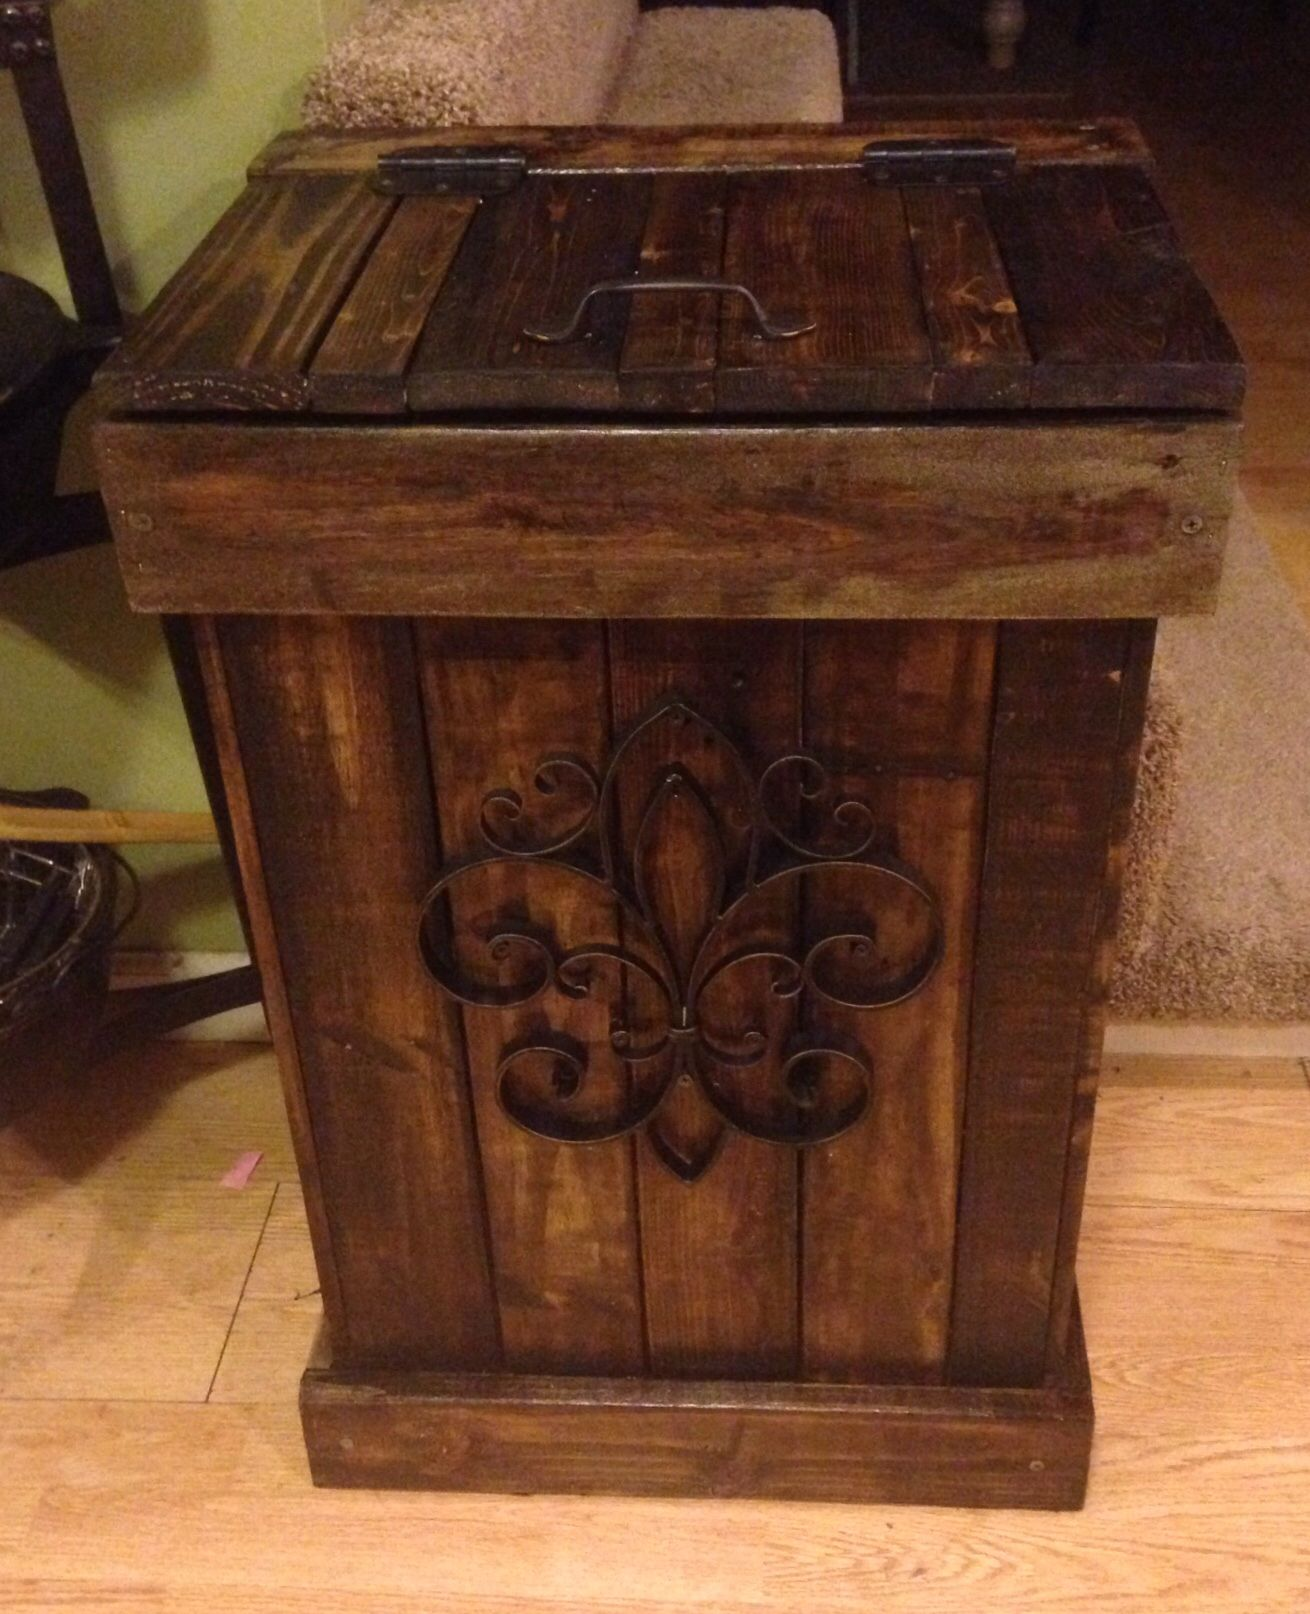 Wooden Kitchen Trash Containers 30 Gallon Wooden Trash Can Made From Wooden Pallets